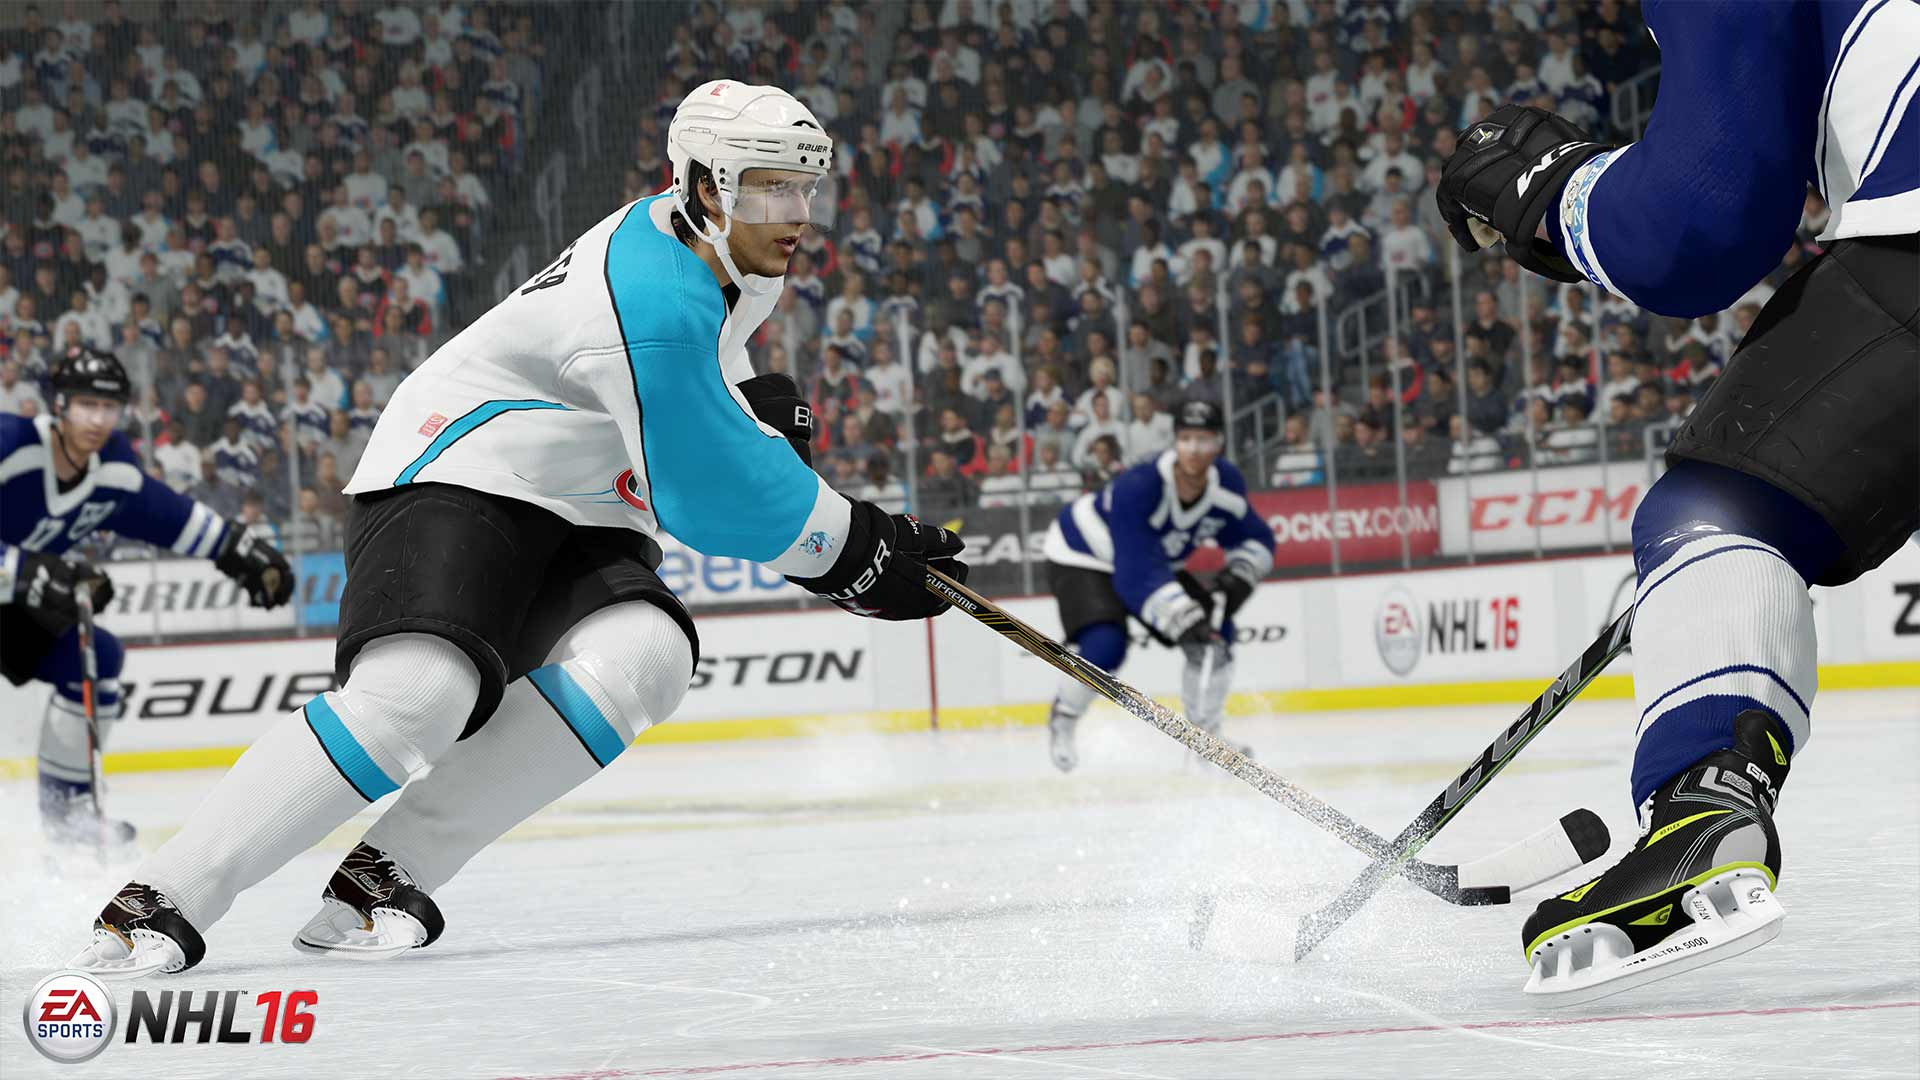 NHL16-EU-Gotteron-Away-5-1920x1080-WM